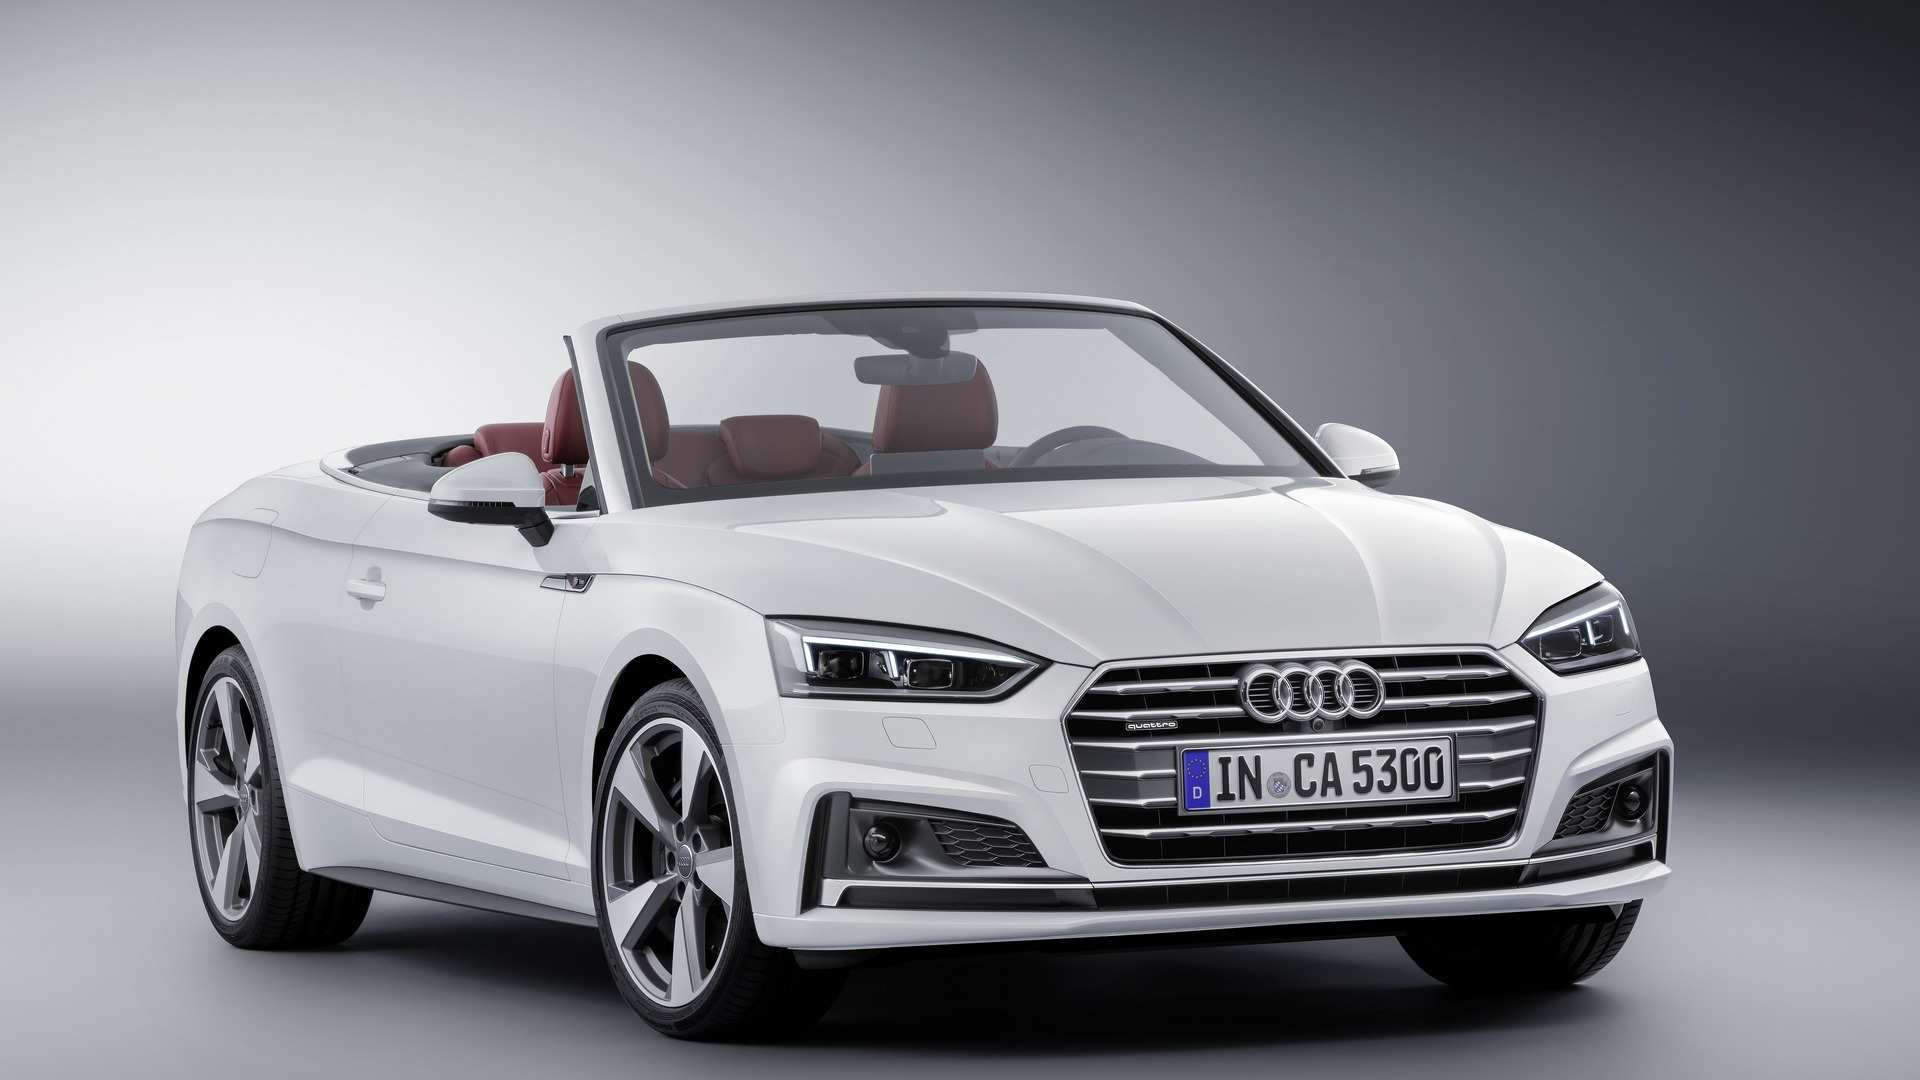 24 All New Audi Cabriolet 2020 Performance and New Engine for Audi Cabriolet 2020